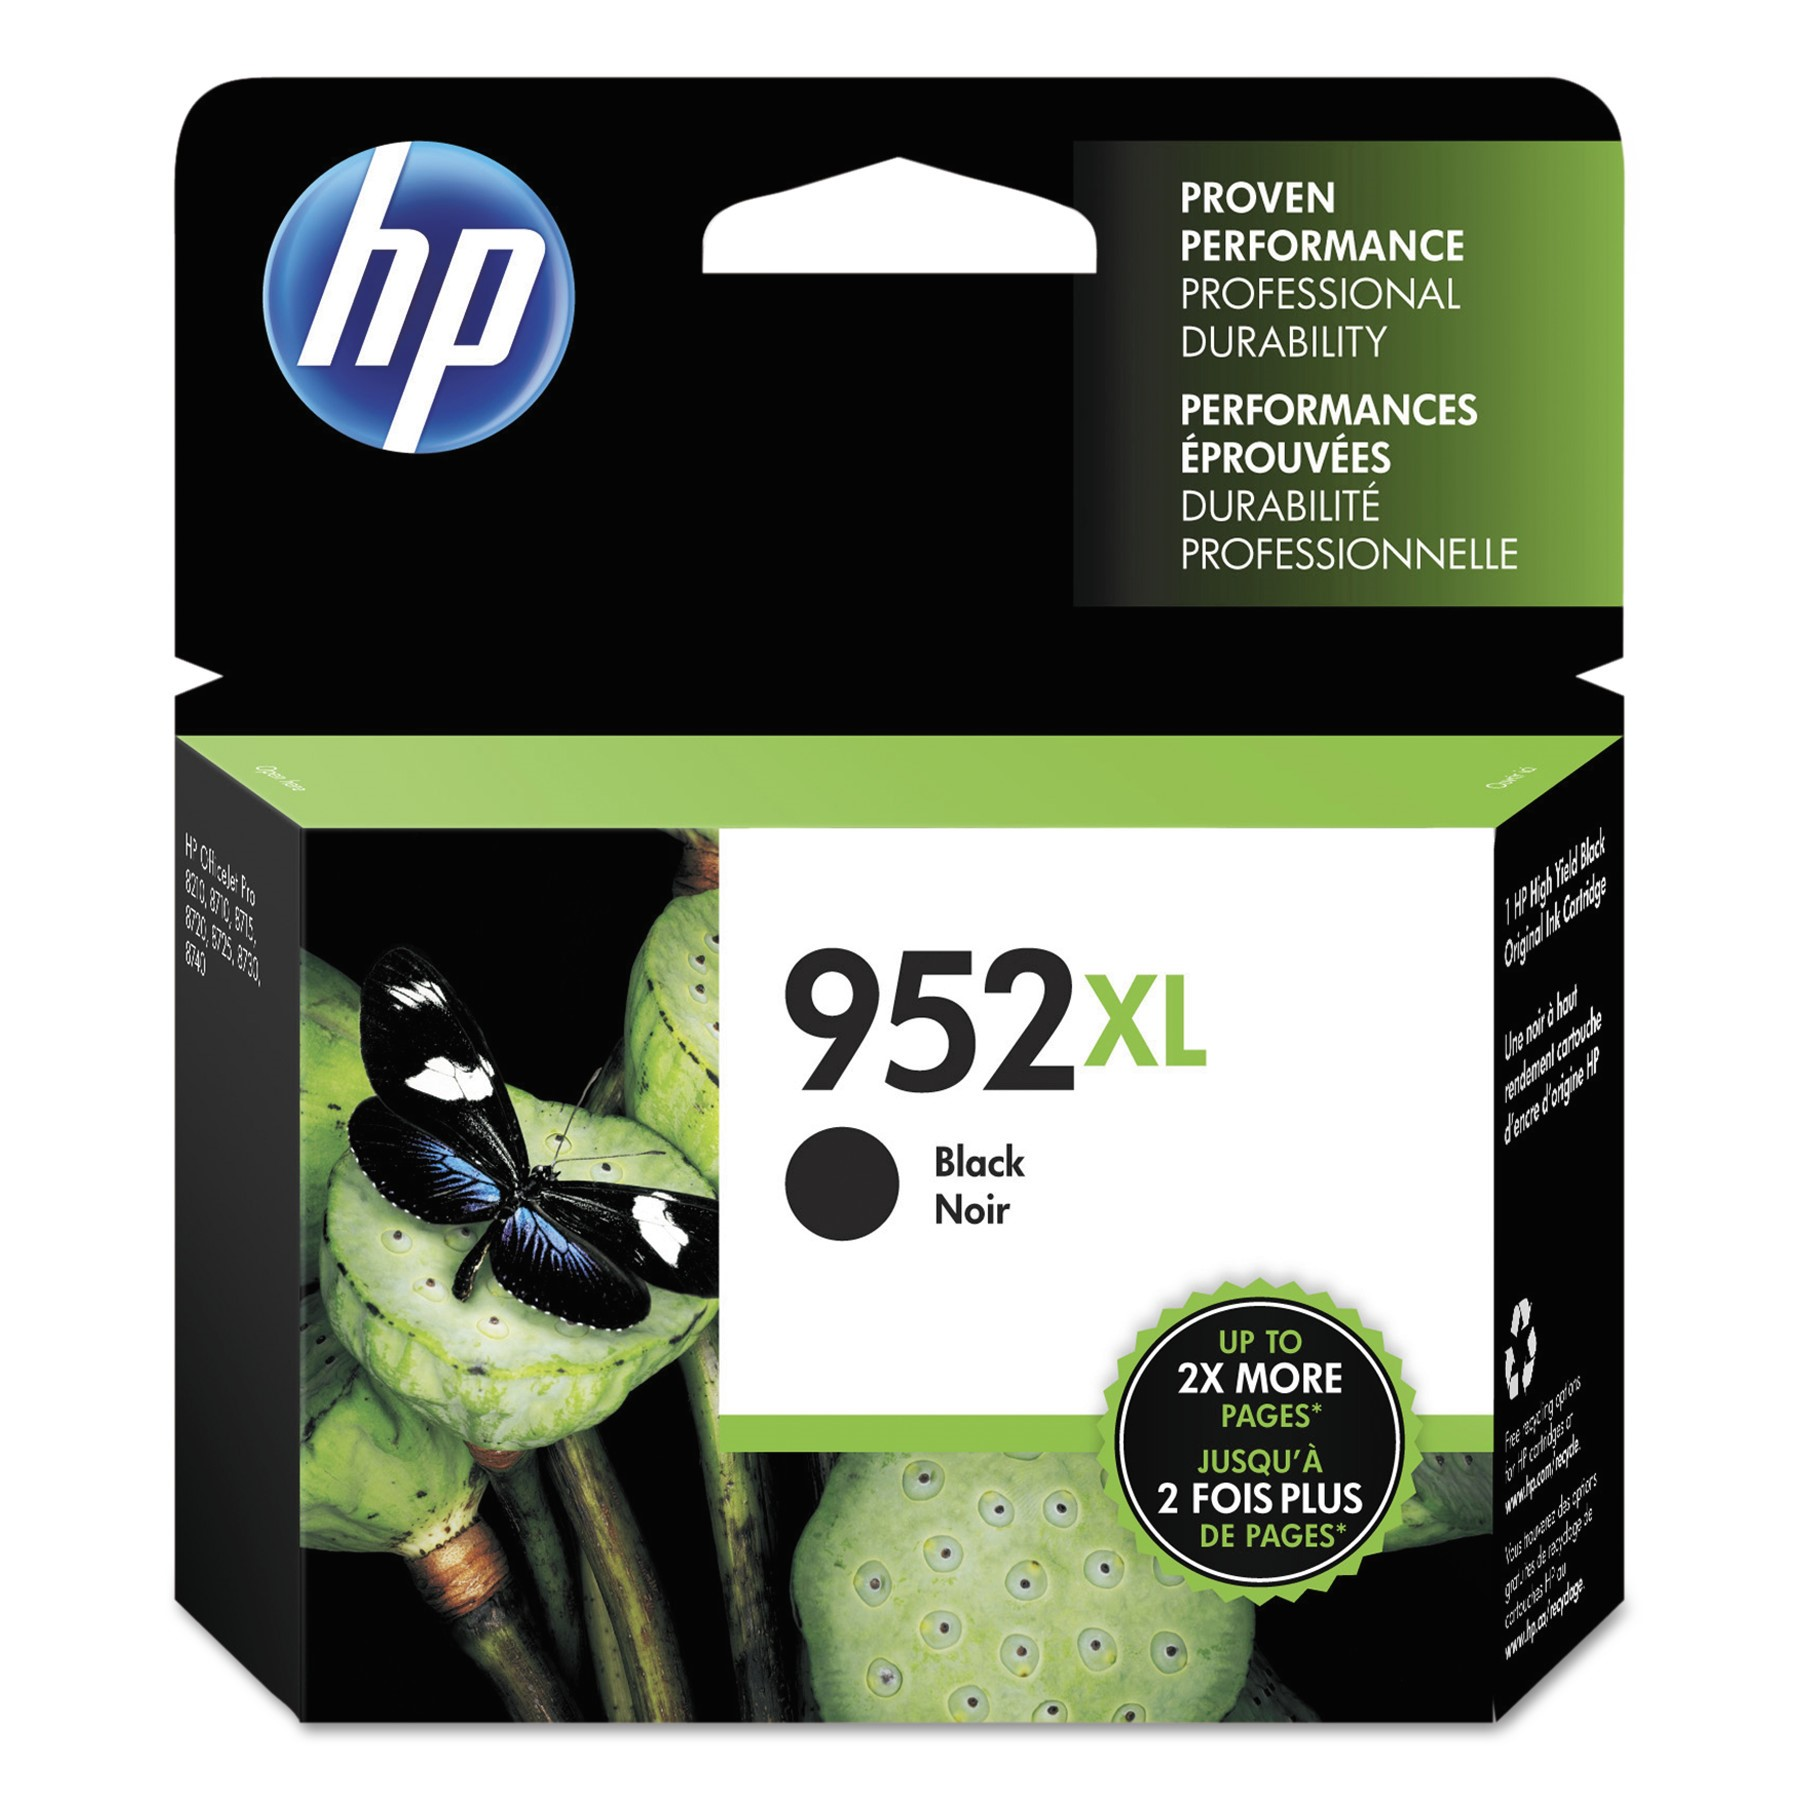 Hp 952XL Black High Yield Original Ink Cartridge (F6U19AN)